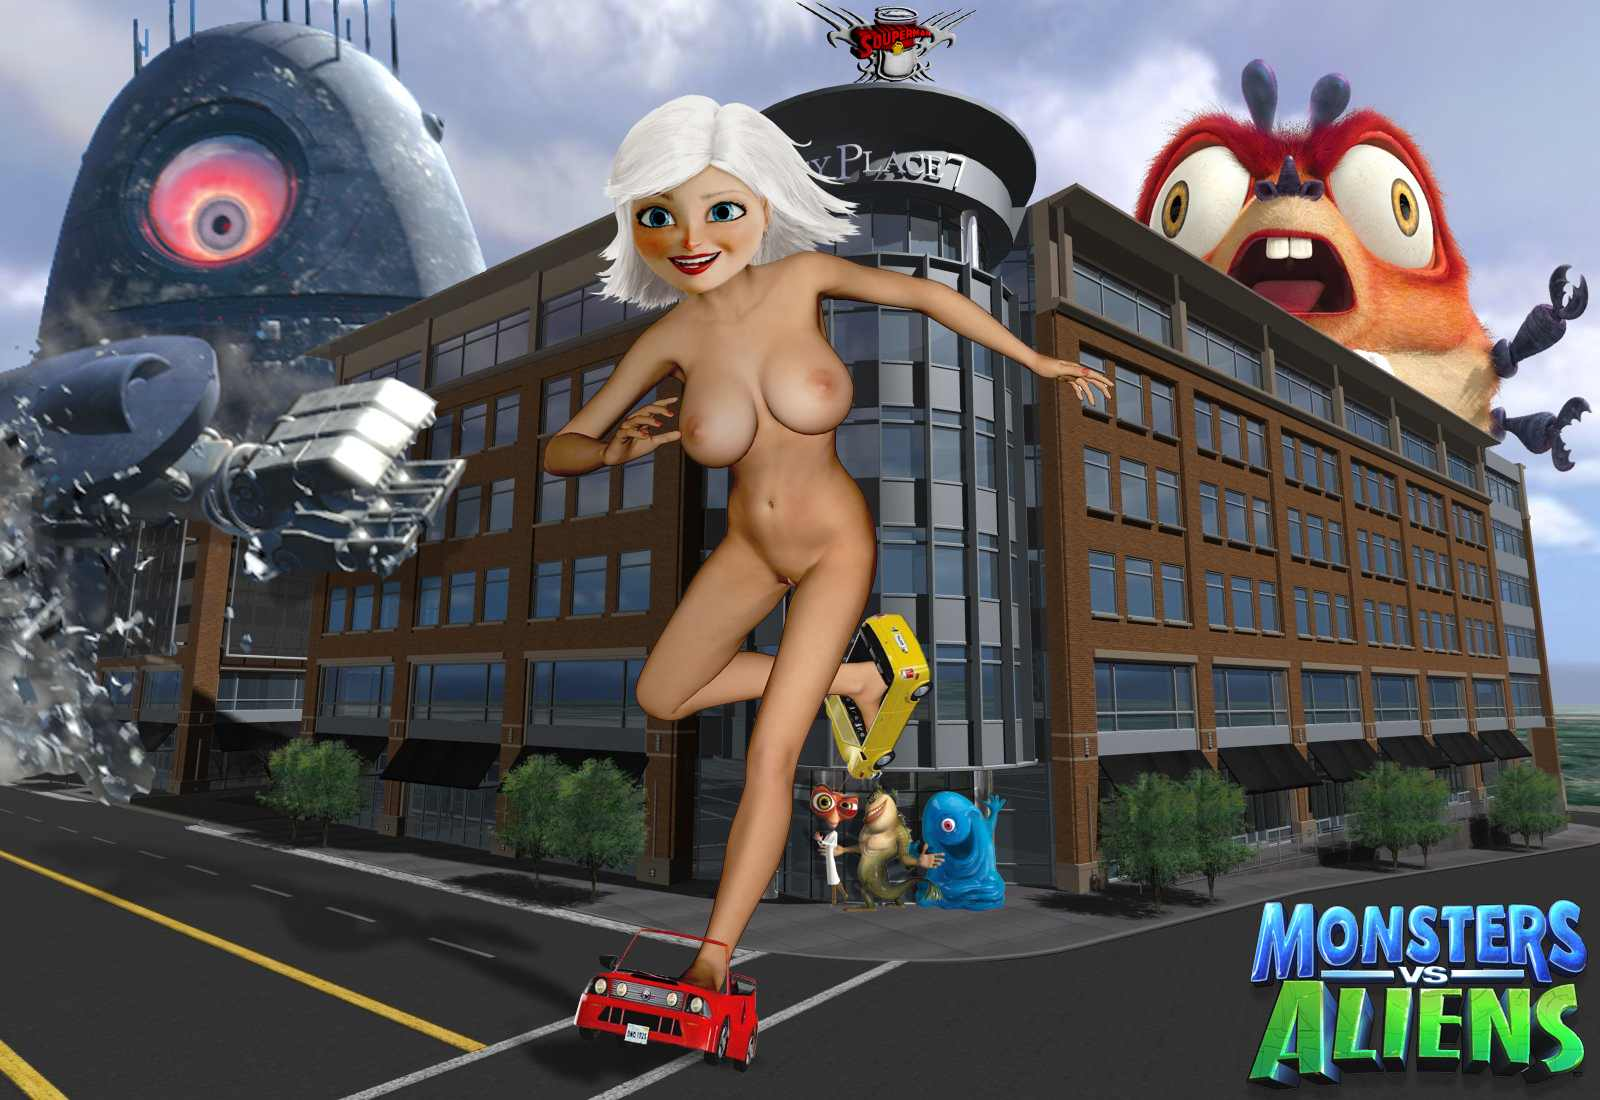 Monsters vs aliens nude susan pics xxx comic